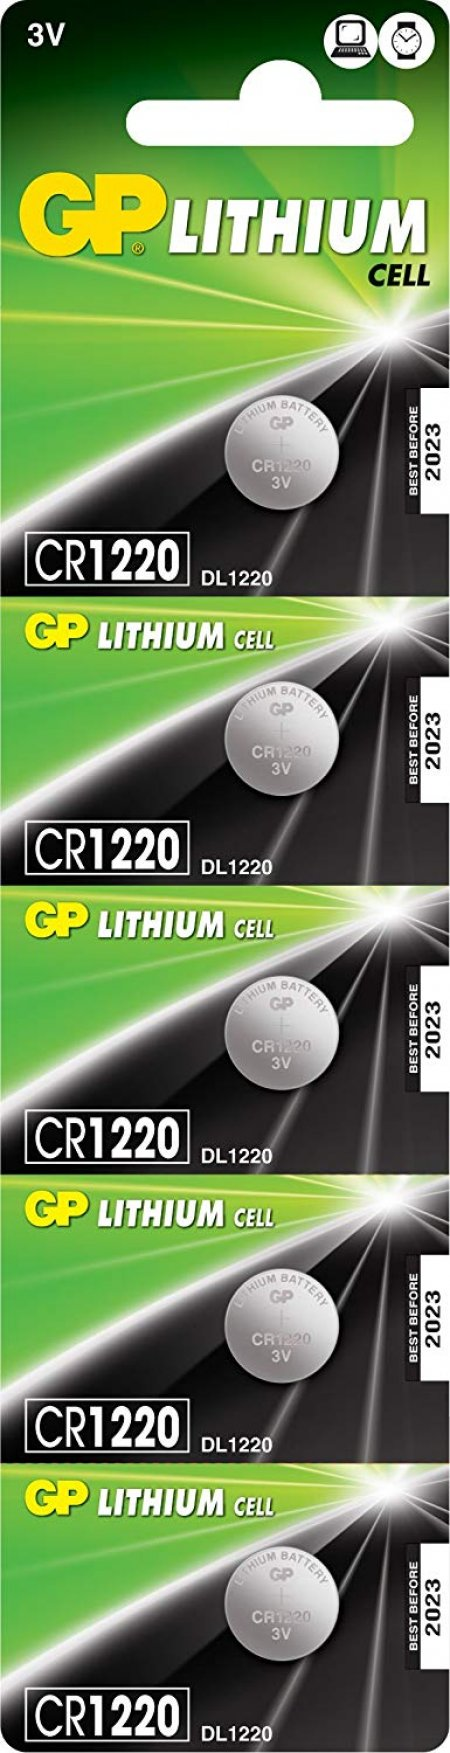 GP Lithium Cell 5'li Lityum Pil CR1220